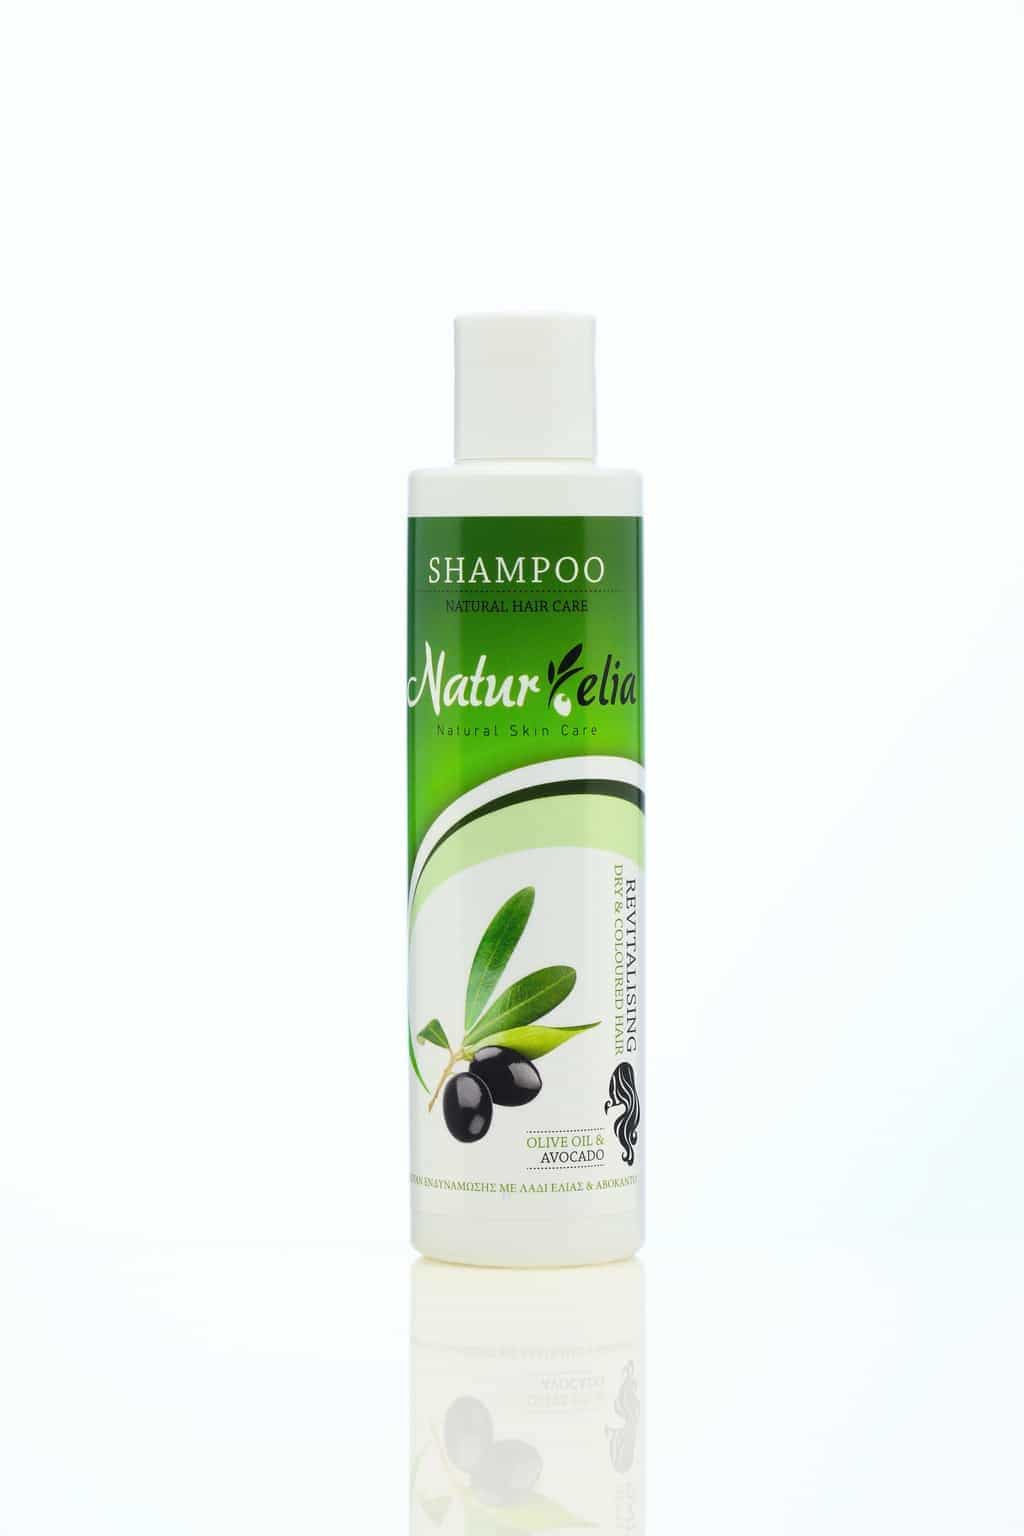 Intensive hair shampoo for dry and coloured hair. - www.ilovecrete.eu